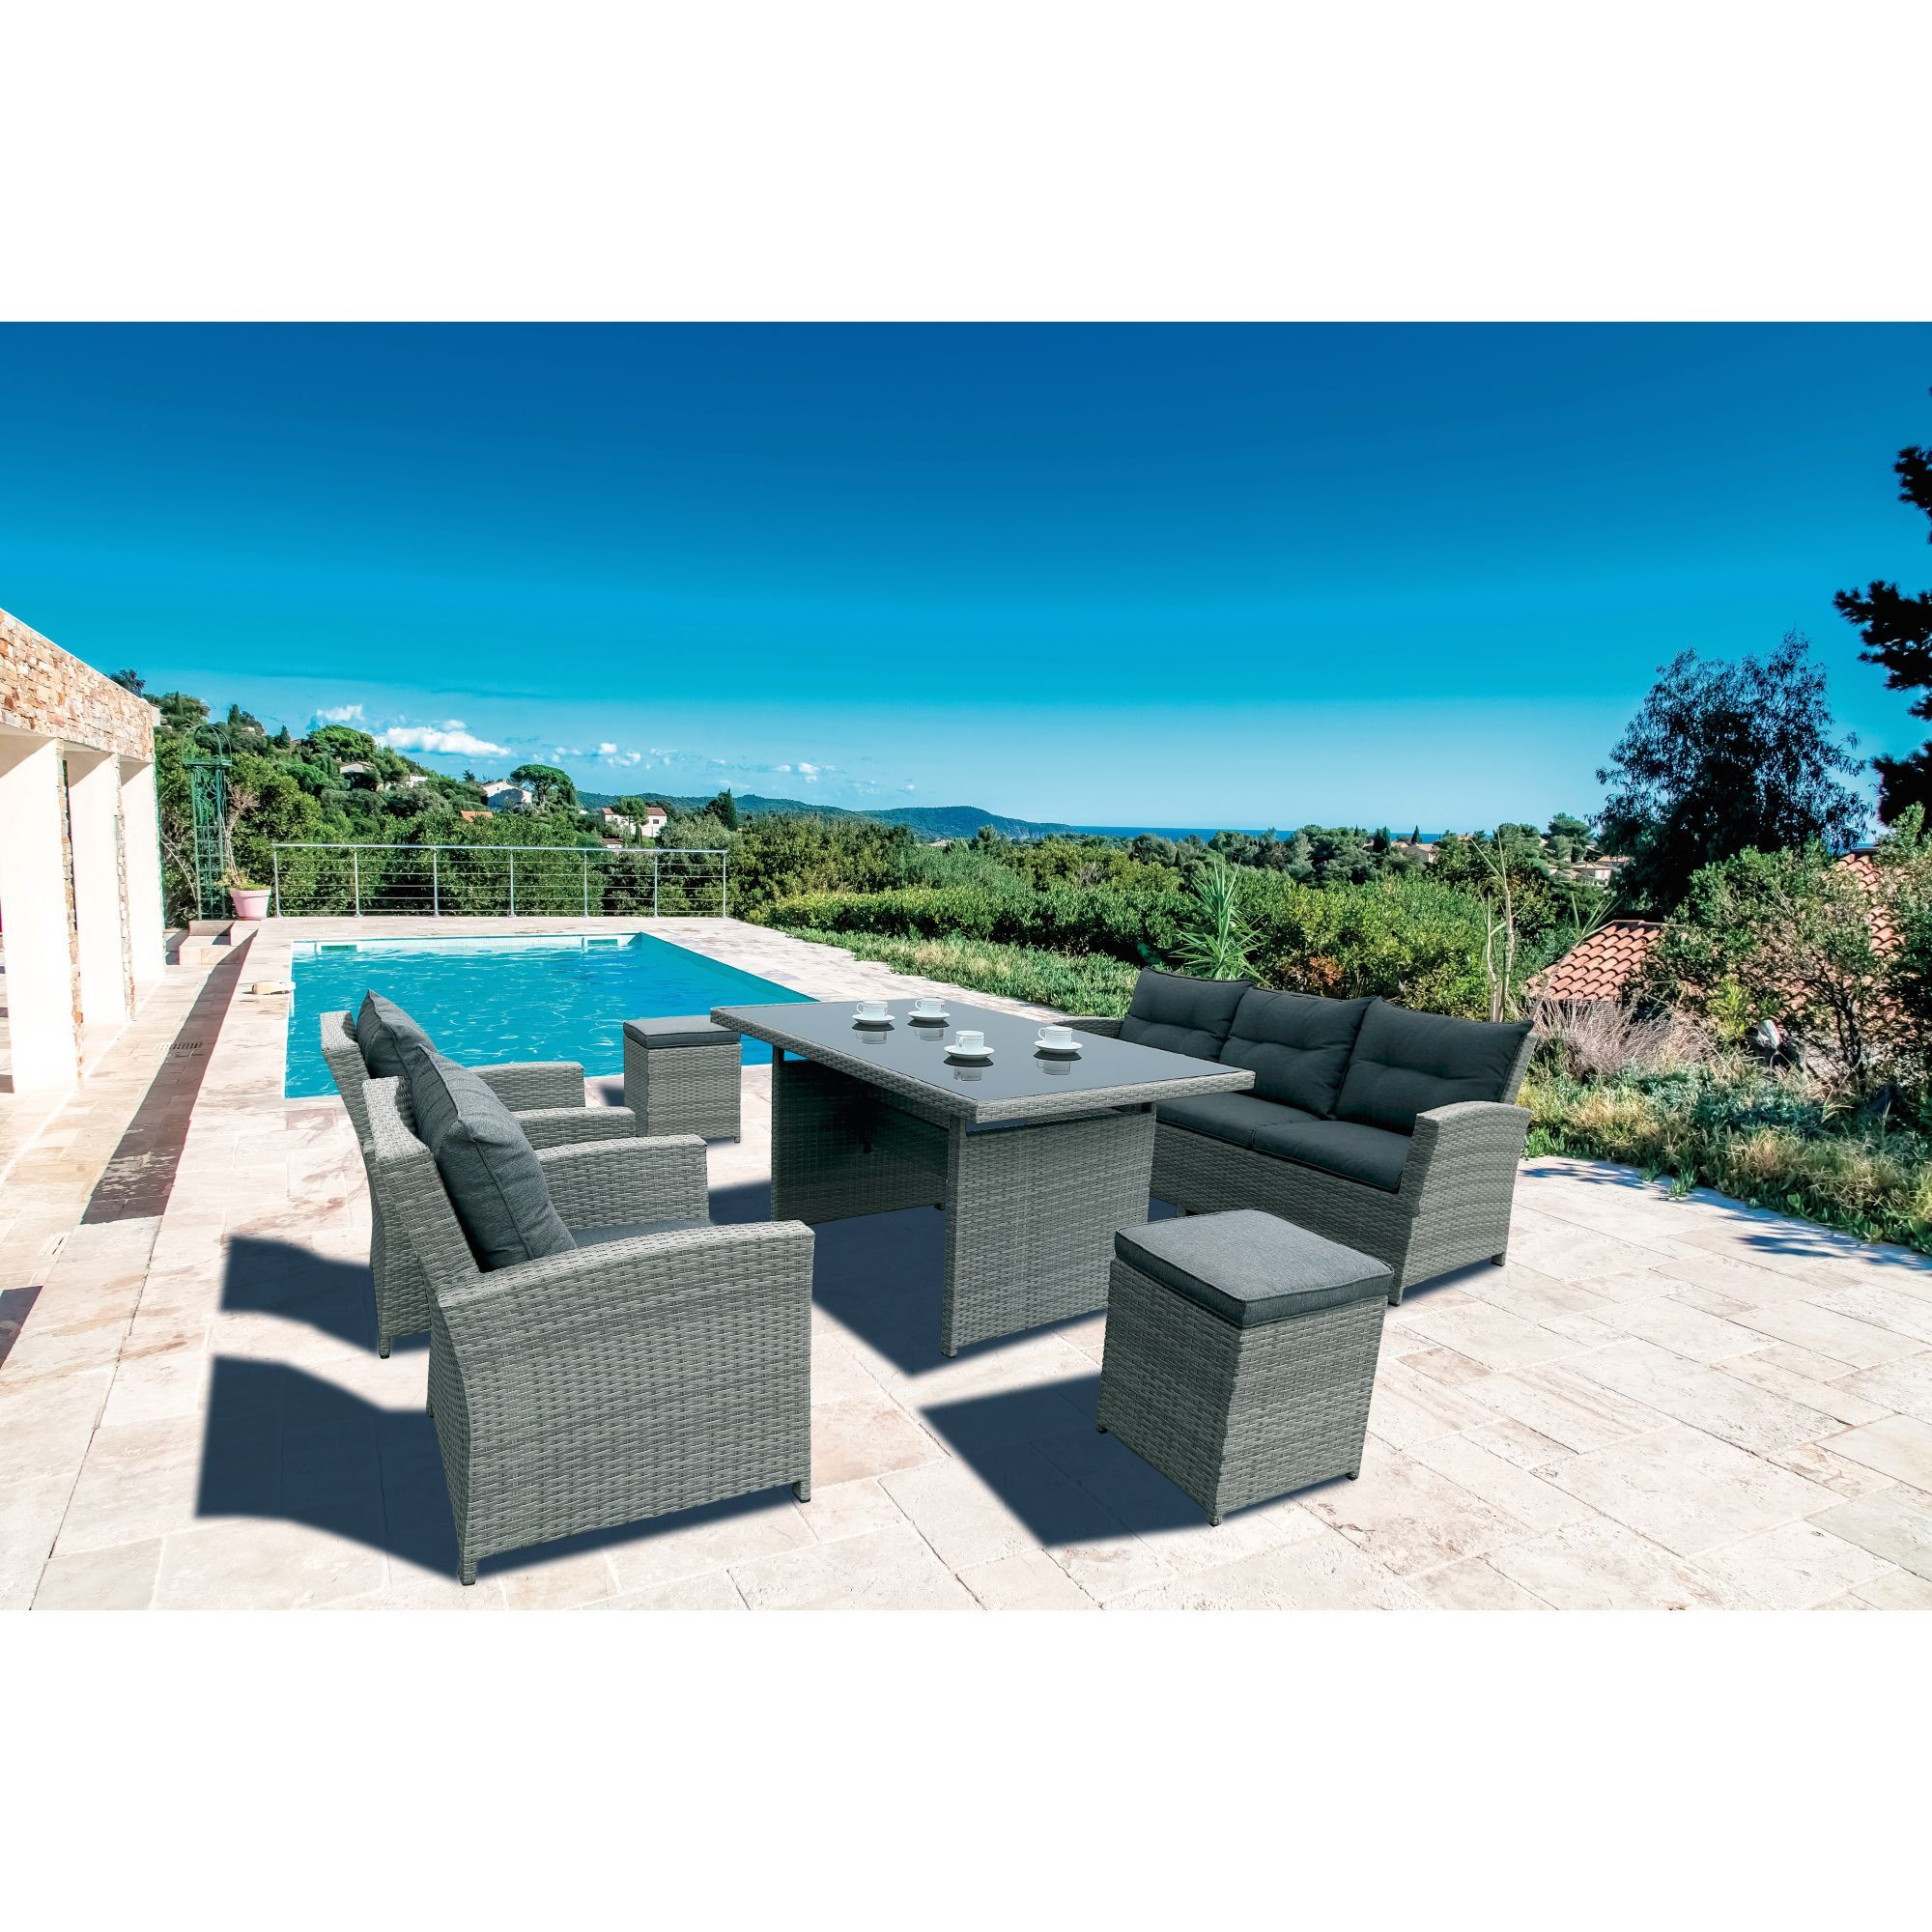 salon de jardin en r sine tress e 6 l ments san diego tables de jardin meubles de jardin. Black Bedroom Furniture Sets. Home Design Ideas